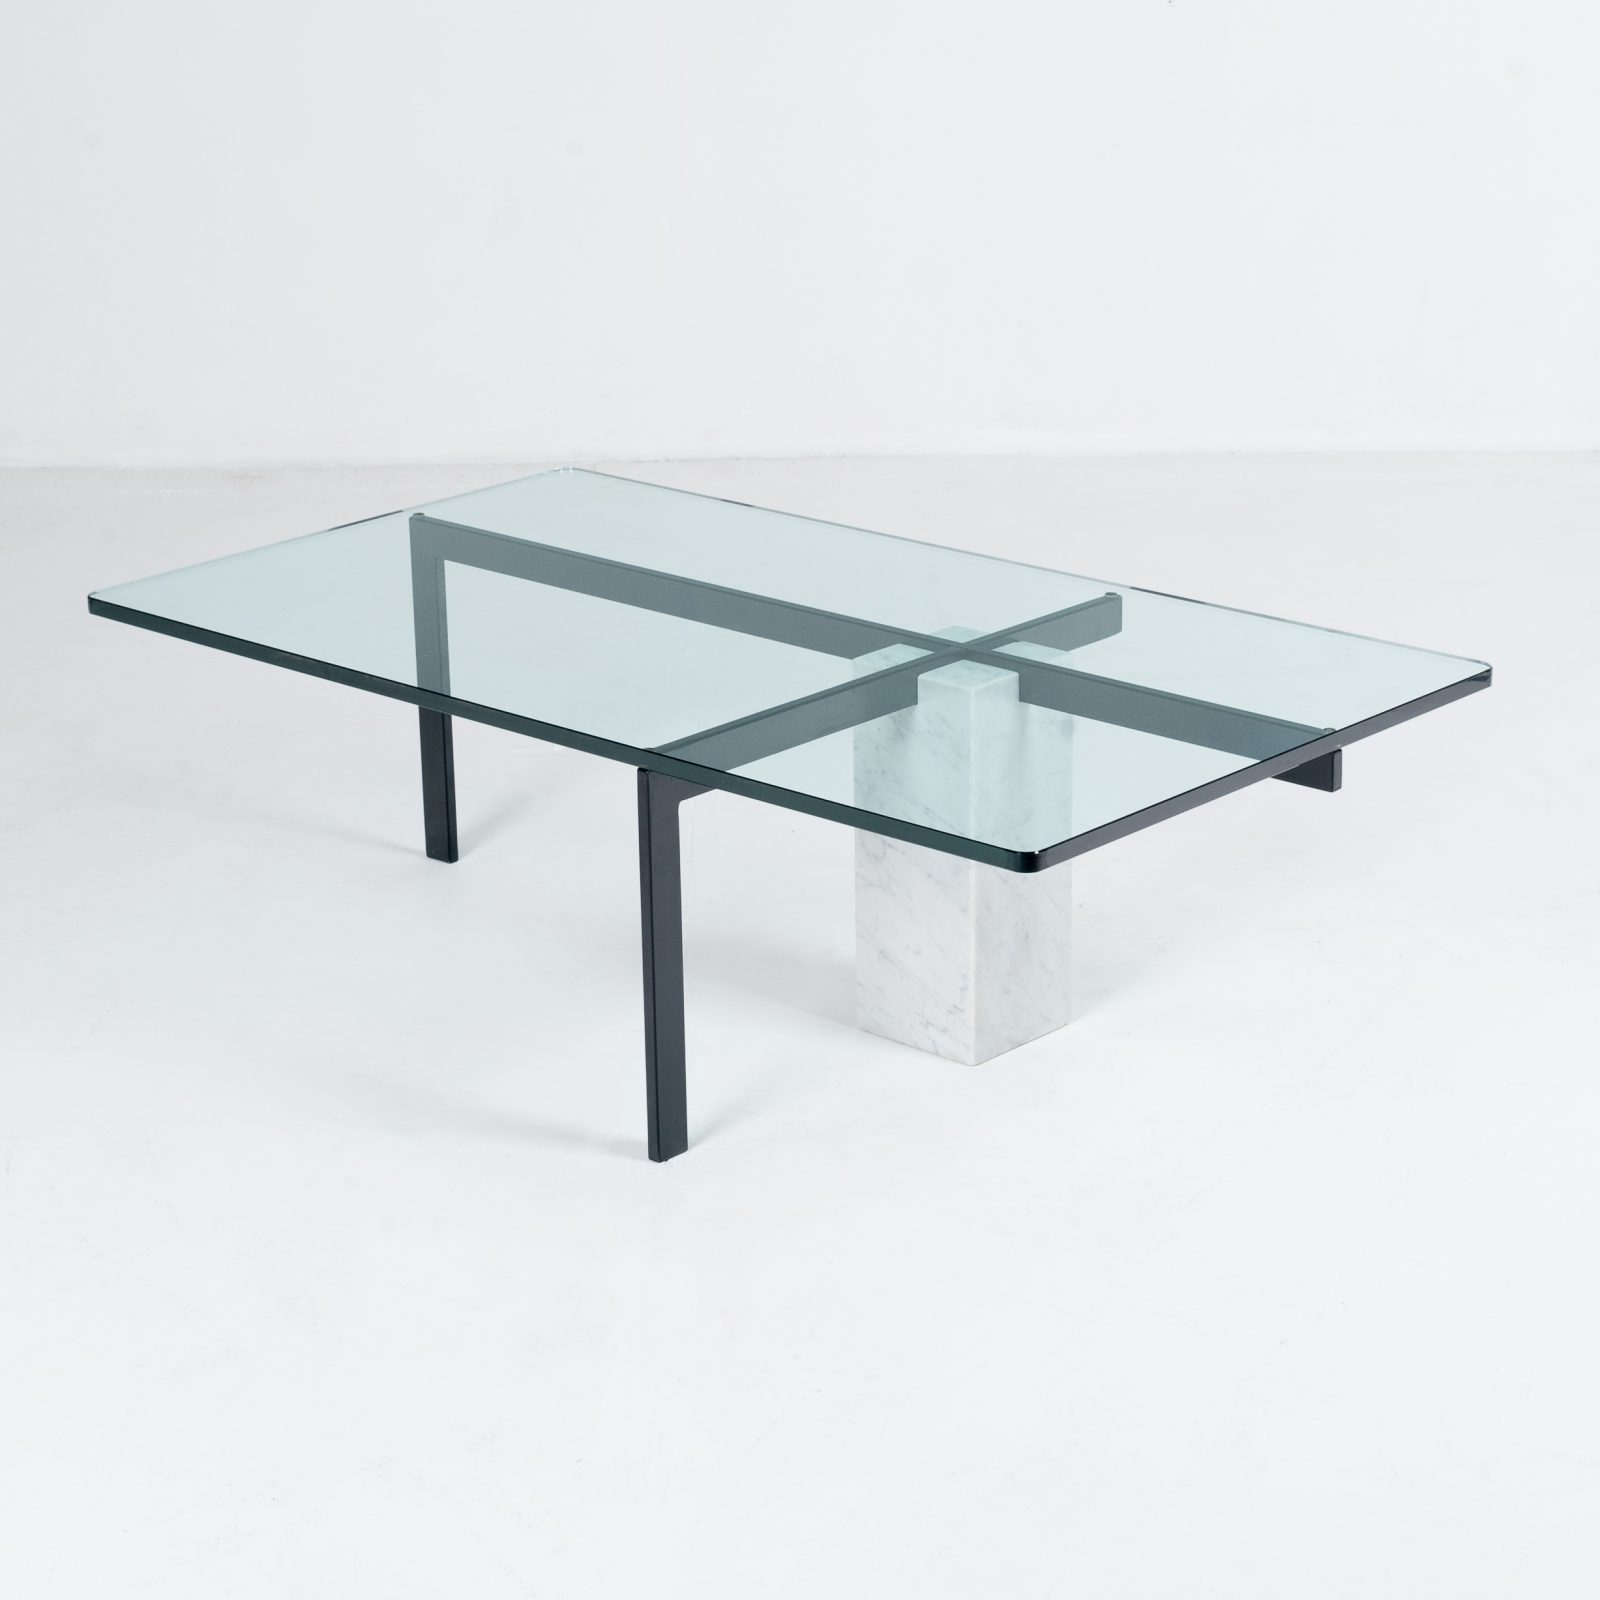 Coffee Table In Marble And Glass, 1960s, The Netherlands 31